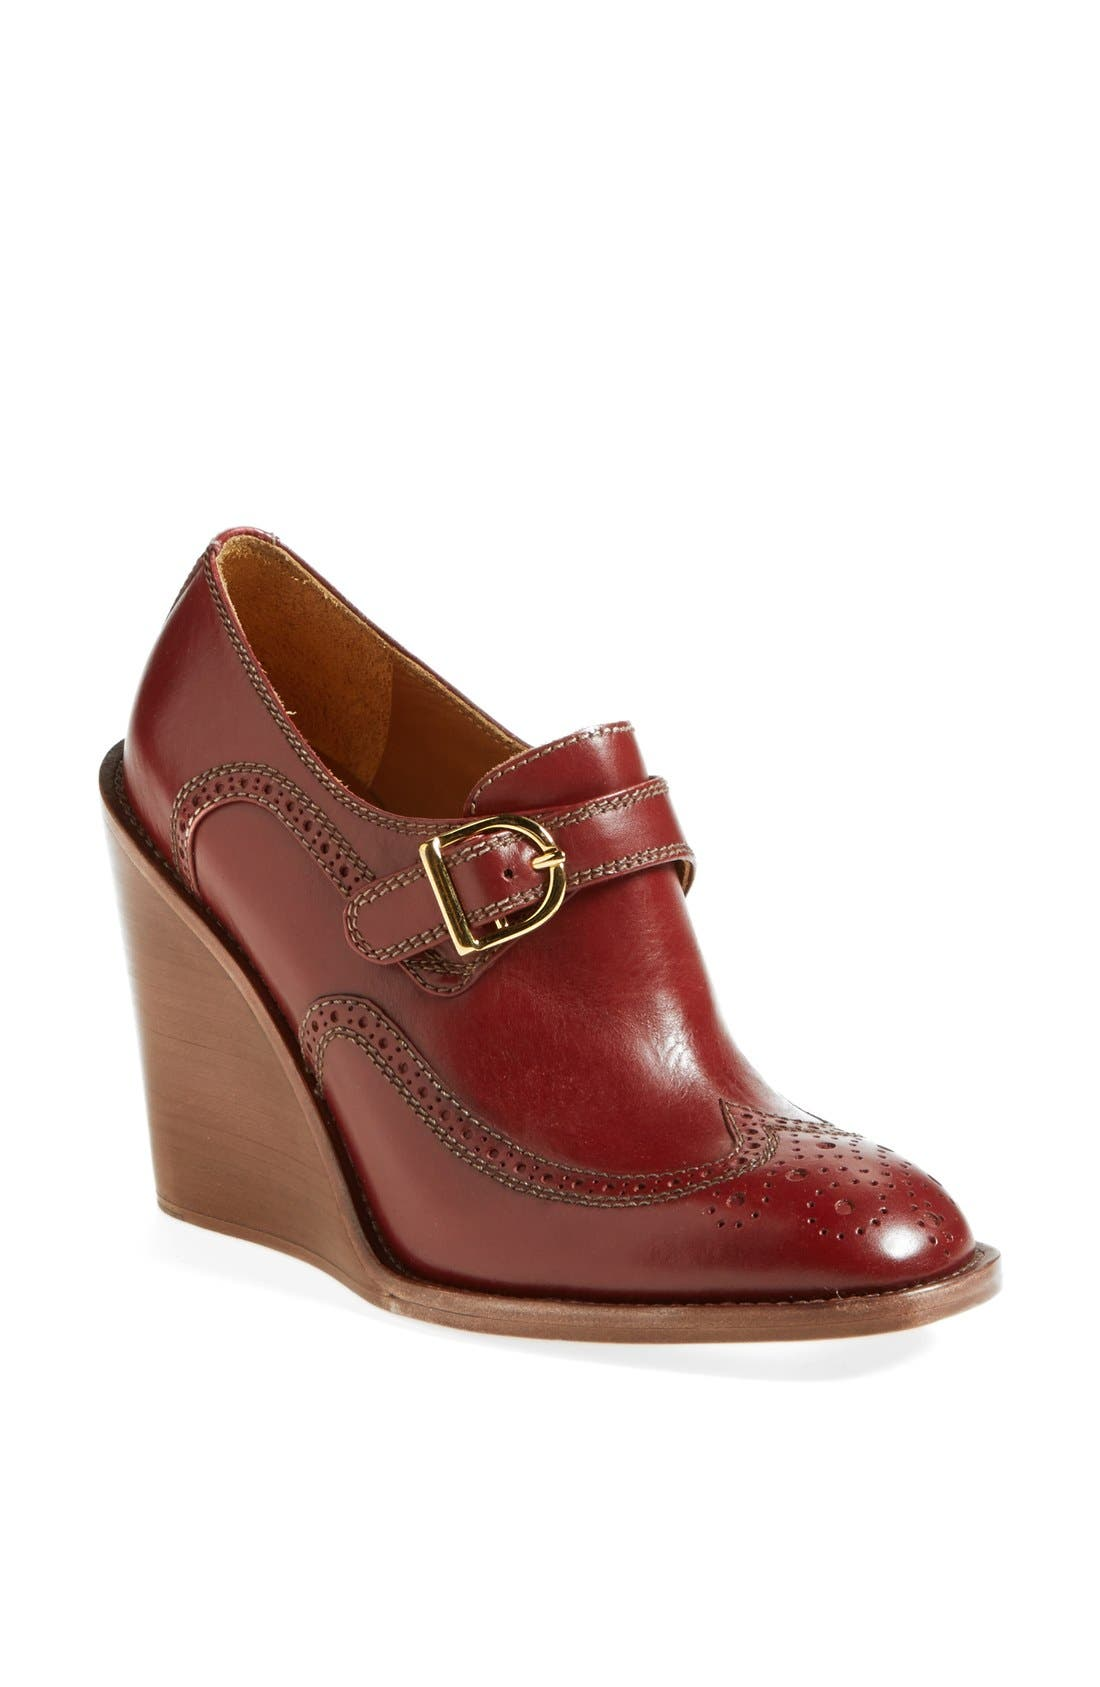 Main Image - See by Chloé 'Ricki' Wingtip Wedge Bootie